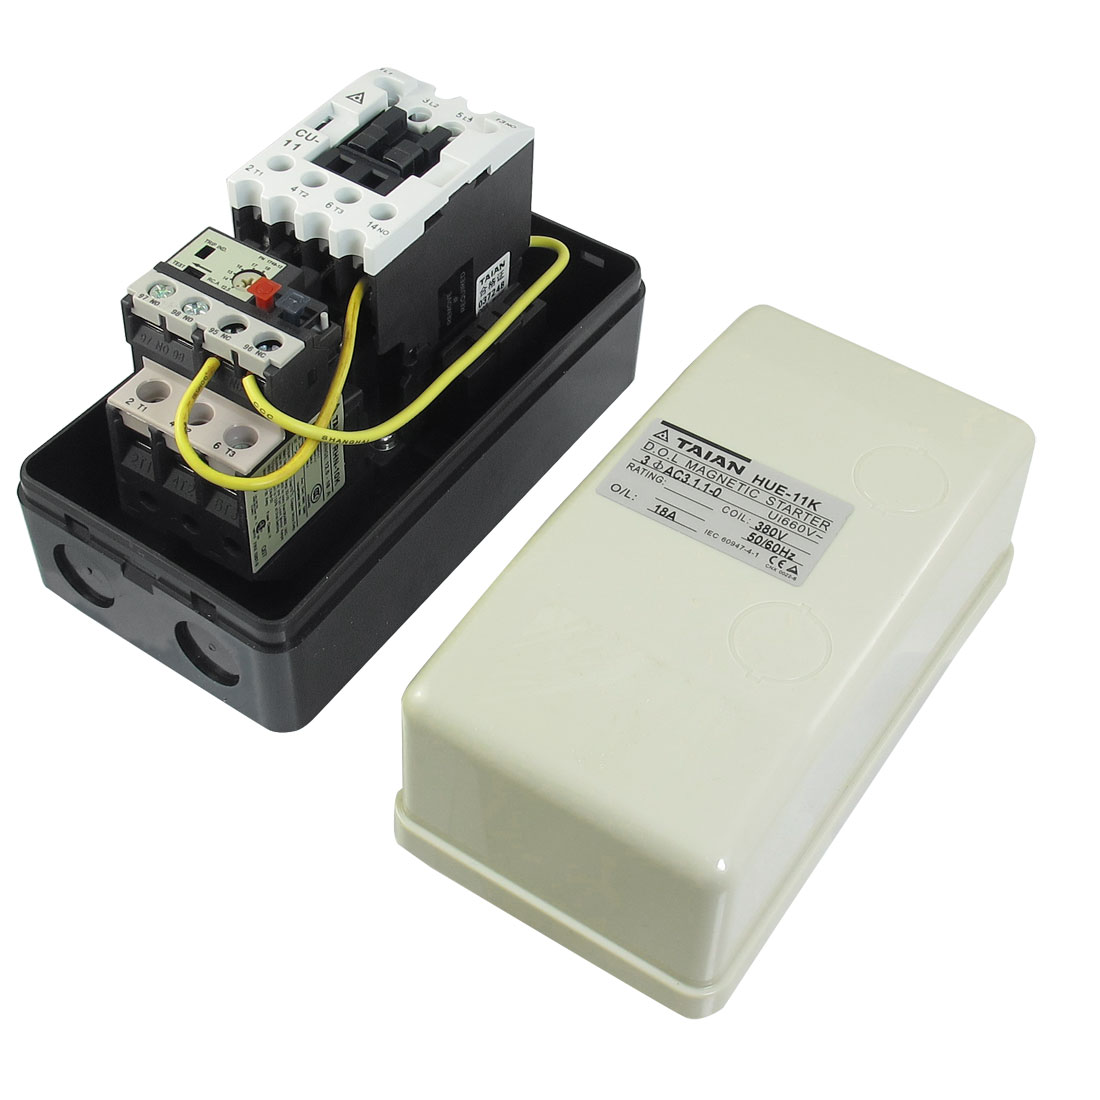 Three-Phase-AC-Contactor-Motor-Magnetic-Starter-380V-Coil-12-5-18A